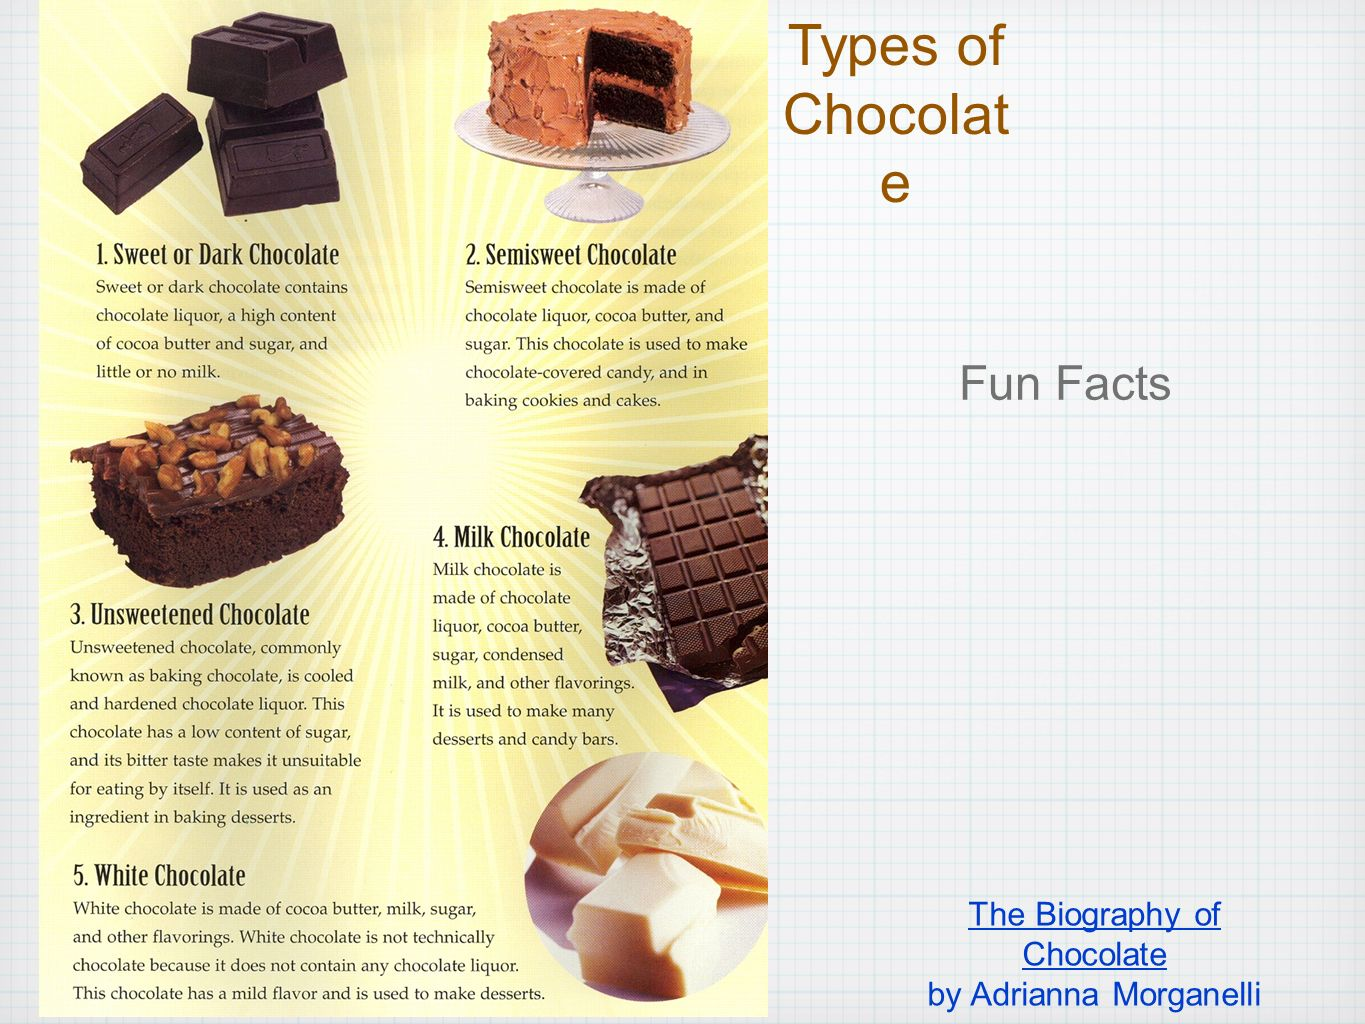 Chocolate Fun Facts - Pumpkin Chocolate Chip Cookies